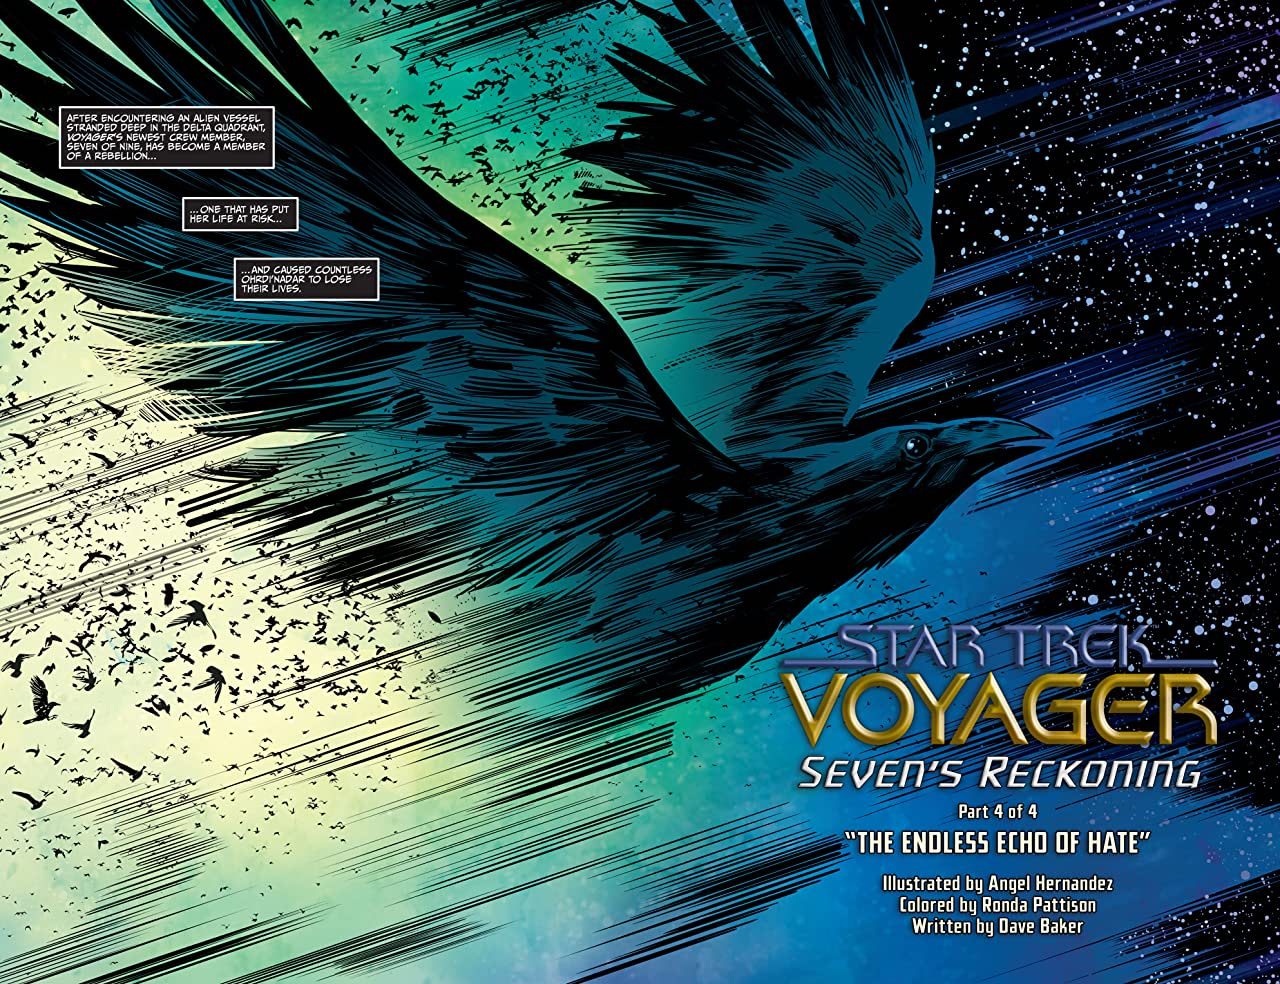 Star Trek: Voyager—Seven's Reckoning #4 (of 4)